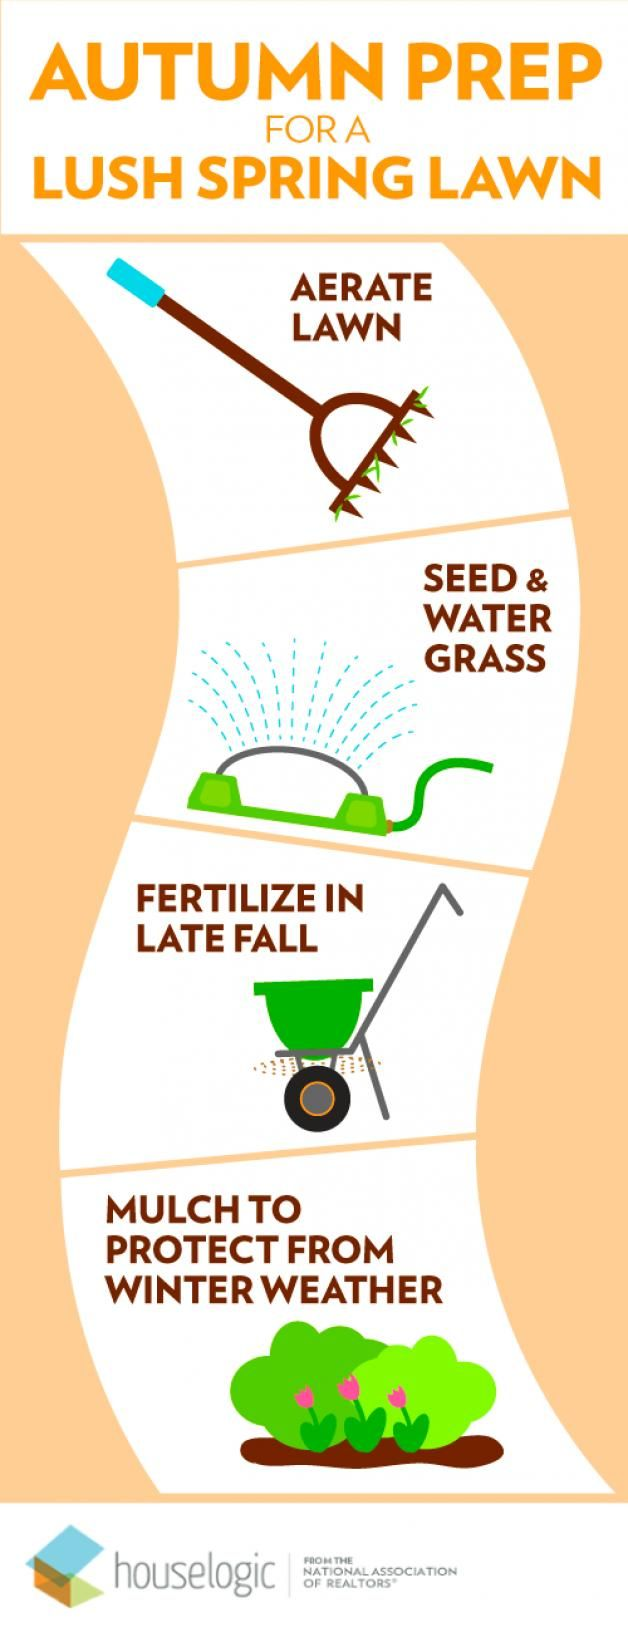 Fall Lawn Care Tip Skip The Rake And Attach A Mulching Blade To Your Mower The Shredded Leaves Will Protect And F In 2020 Fall Lawn Care Winter Lawn Winter Lawn Care